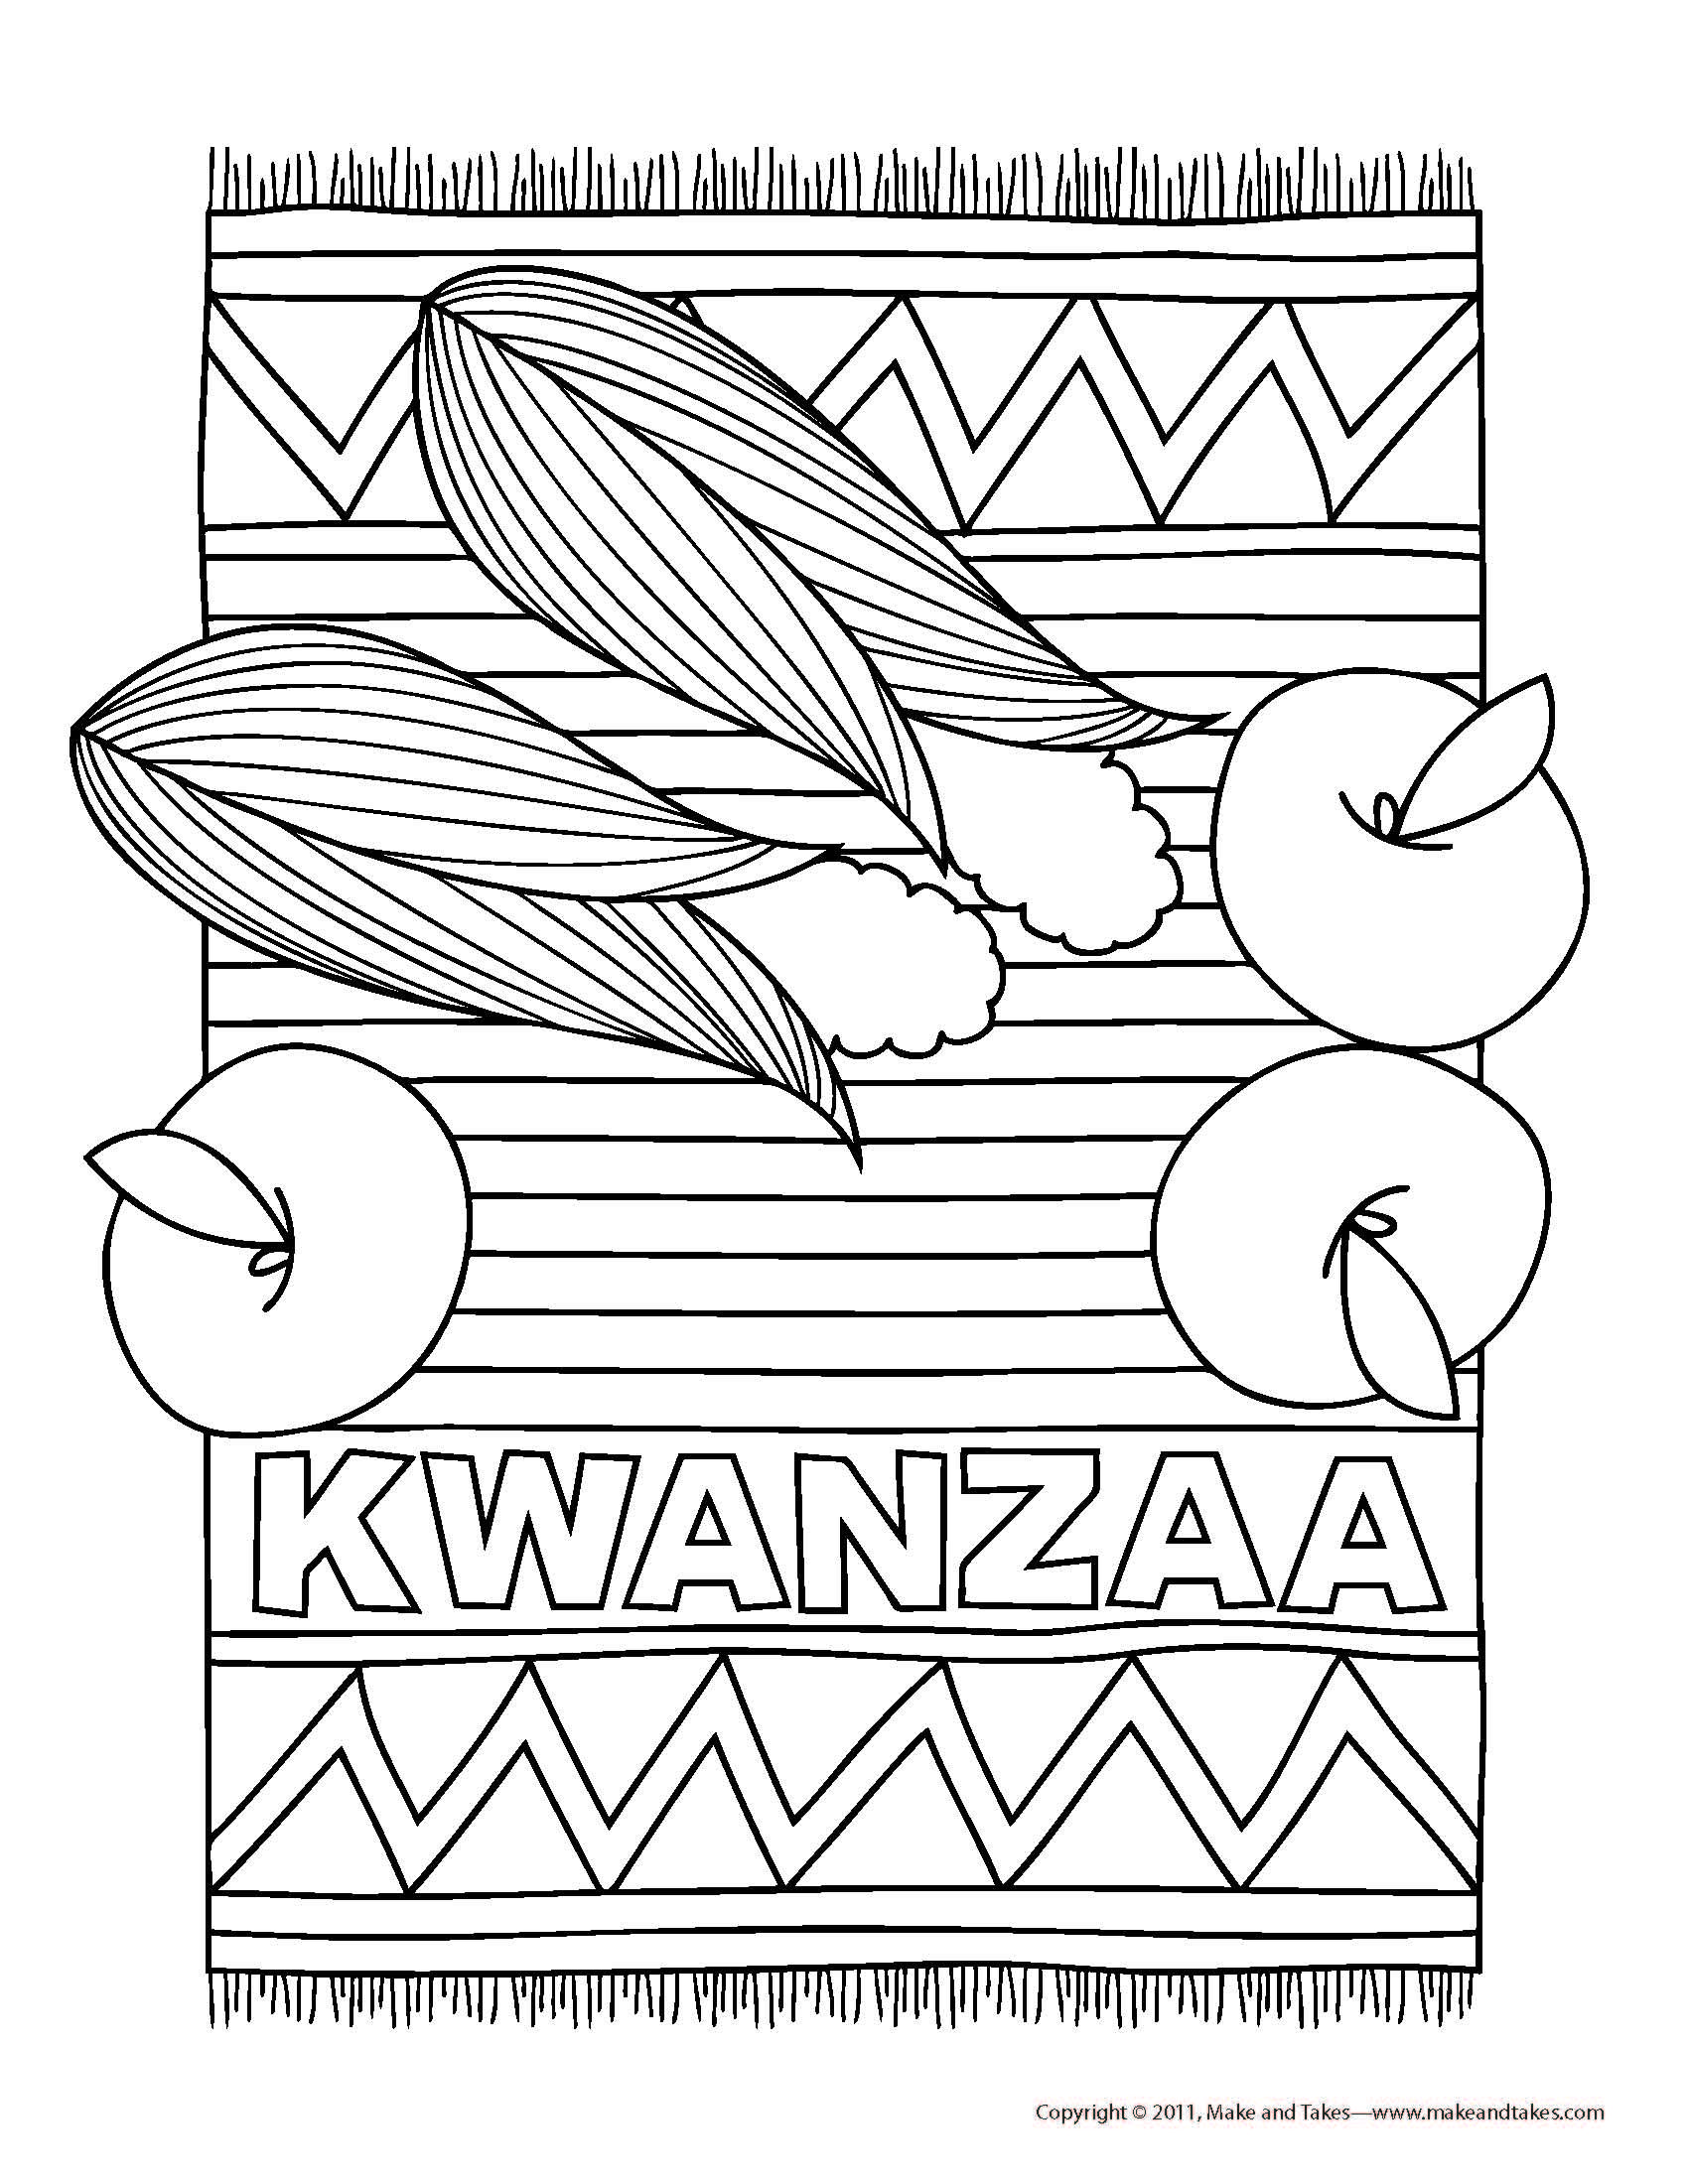 Kwanzaa Coloring Pages Kwanzaa Colouring Pagefind More Information About Kwanzaa At Fun